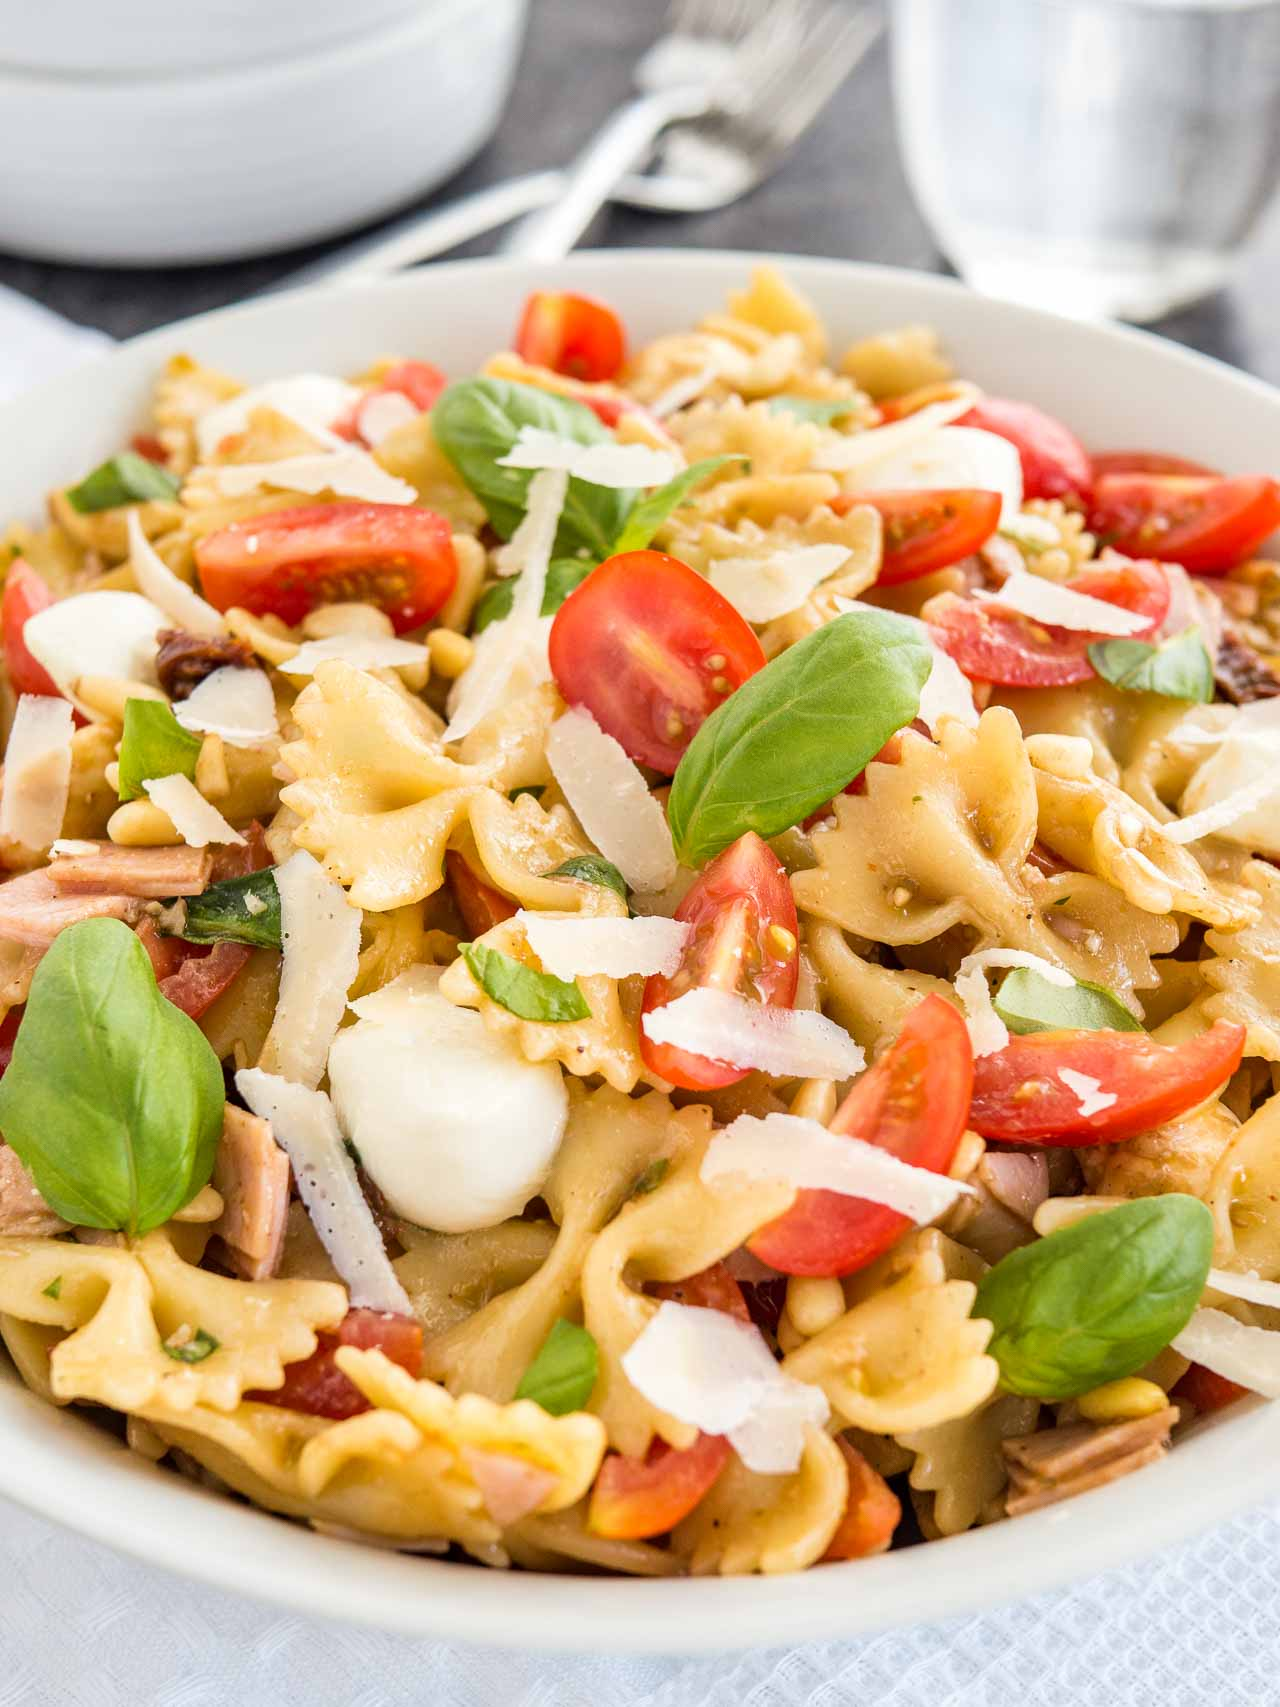 Pasta Salad With Italian Dressing Gowns And Dress Ideas